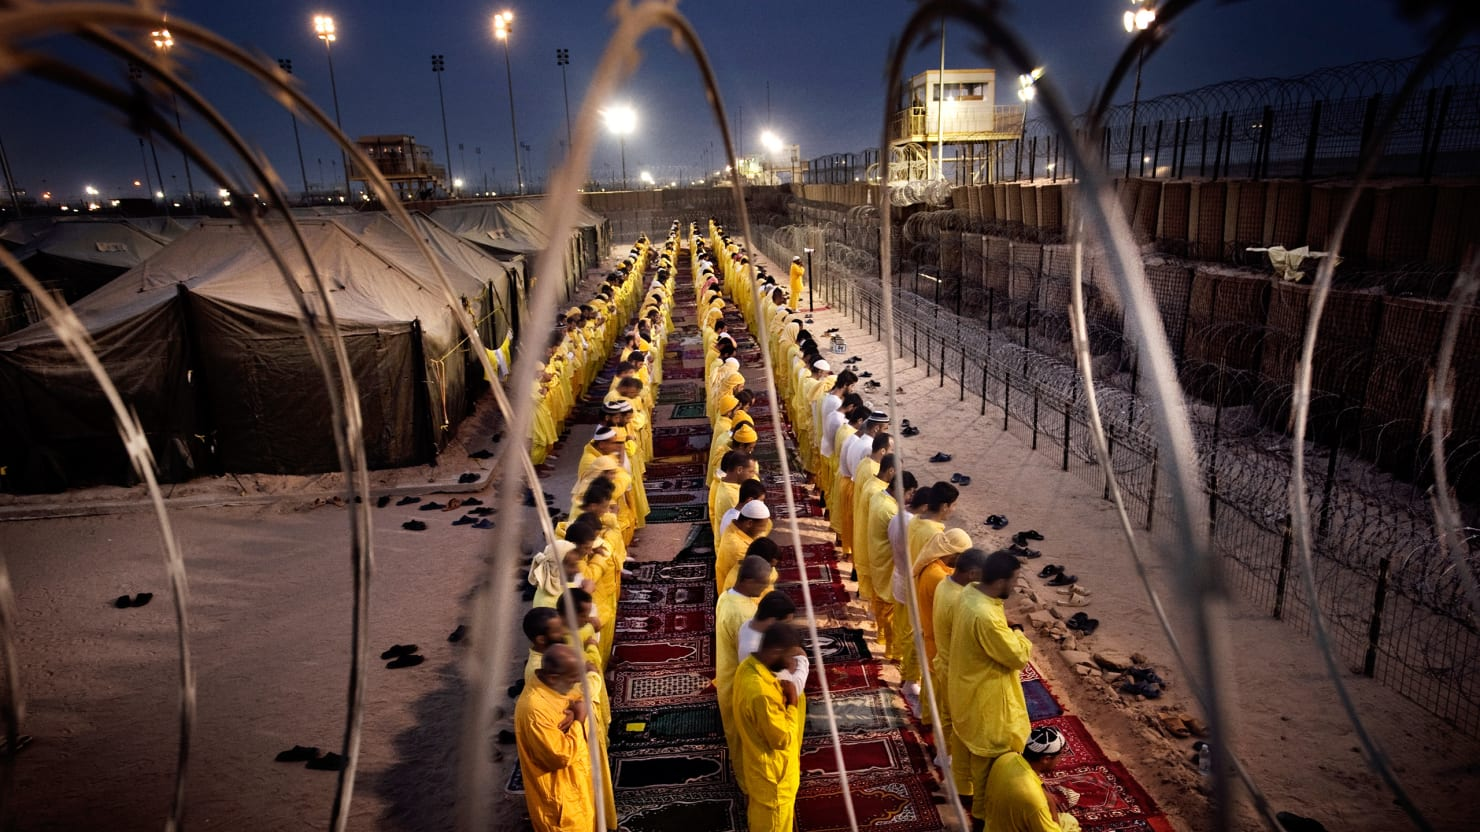 ISIS Used a U.S. Prison as Boot Camp